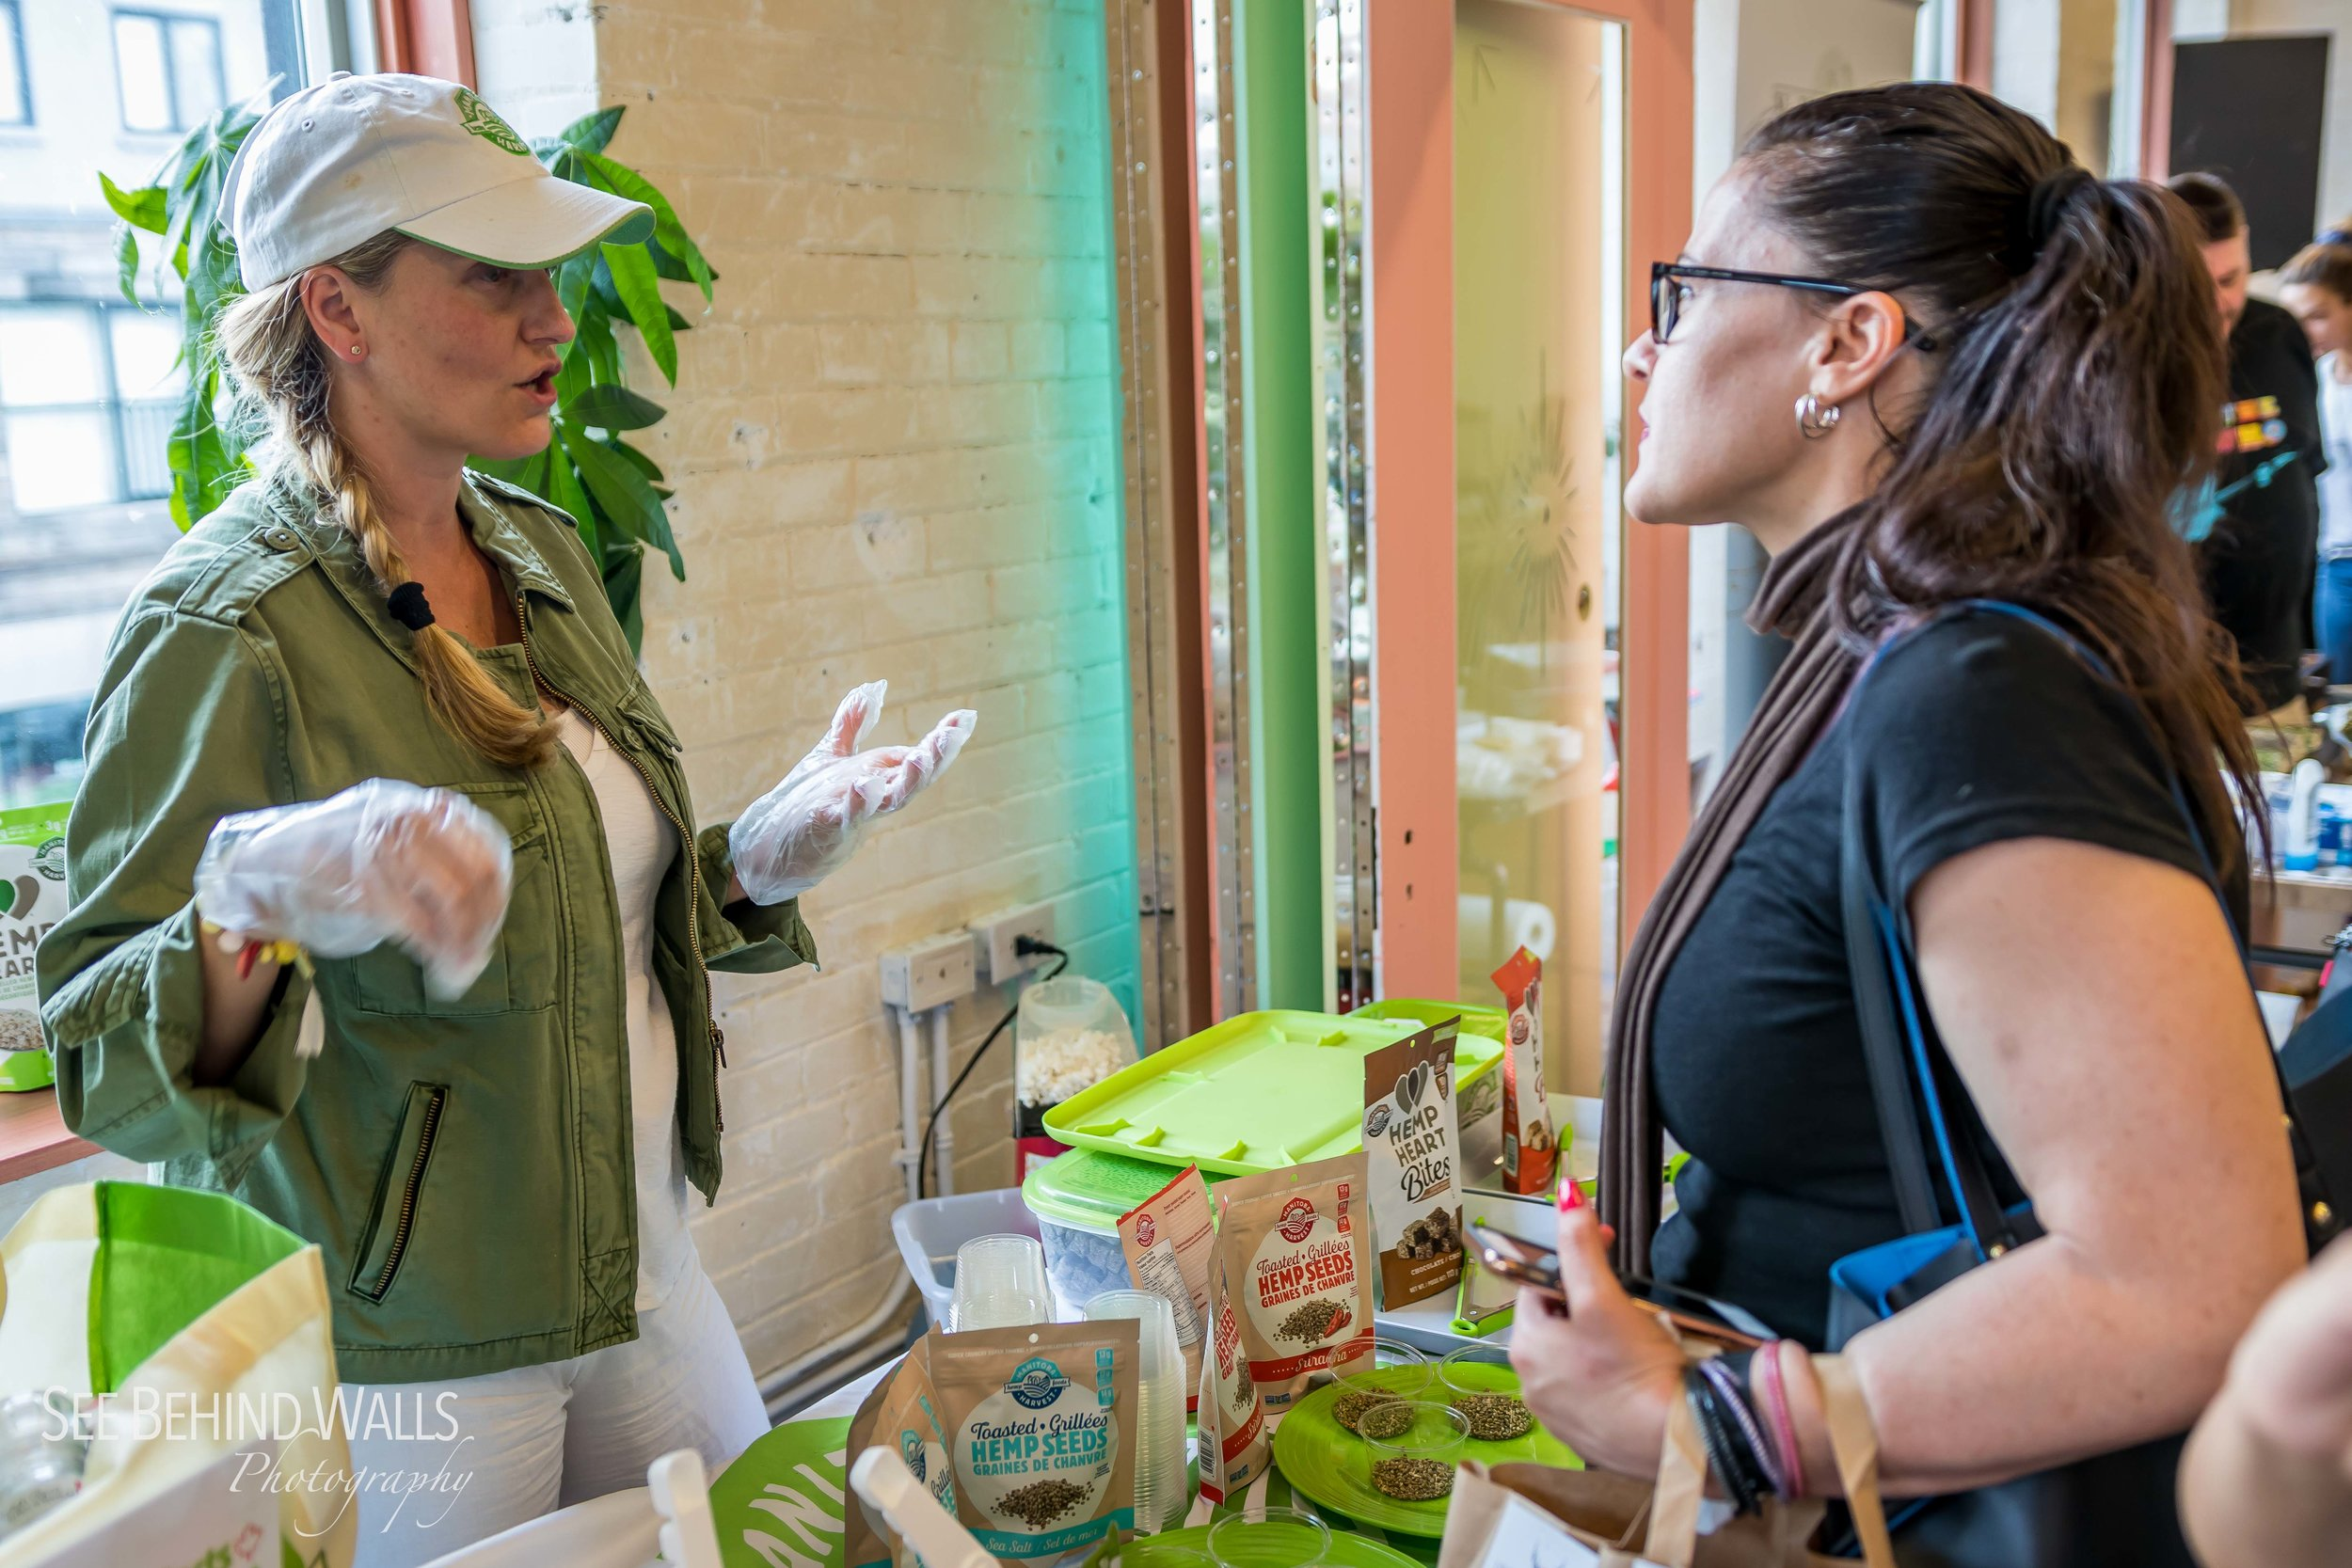 Manitoba Harvest Hemp Foods  served up their Toasted Hemp Seeds, Hemp Bites and freshly popped popcorn topped with their Hemp Oil and a selection of Hemp Toppers! Photo by Alex Bez, See Behind Walls  Photography .